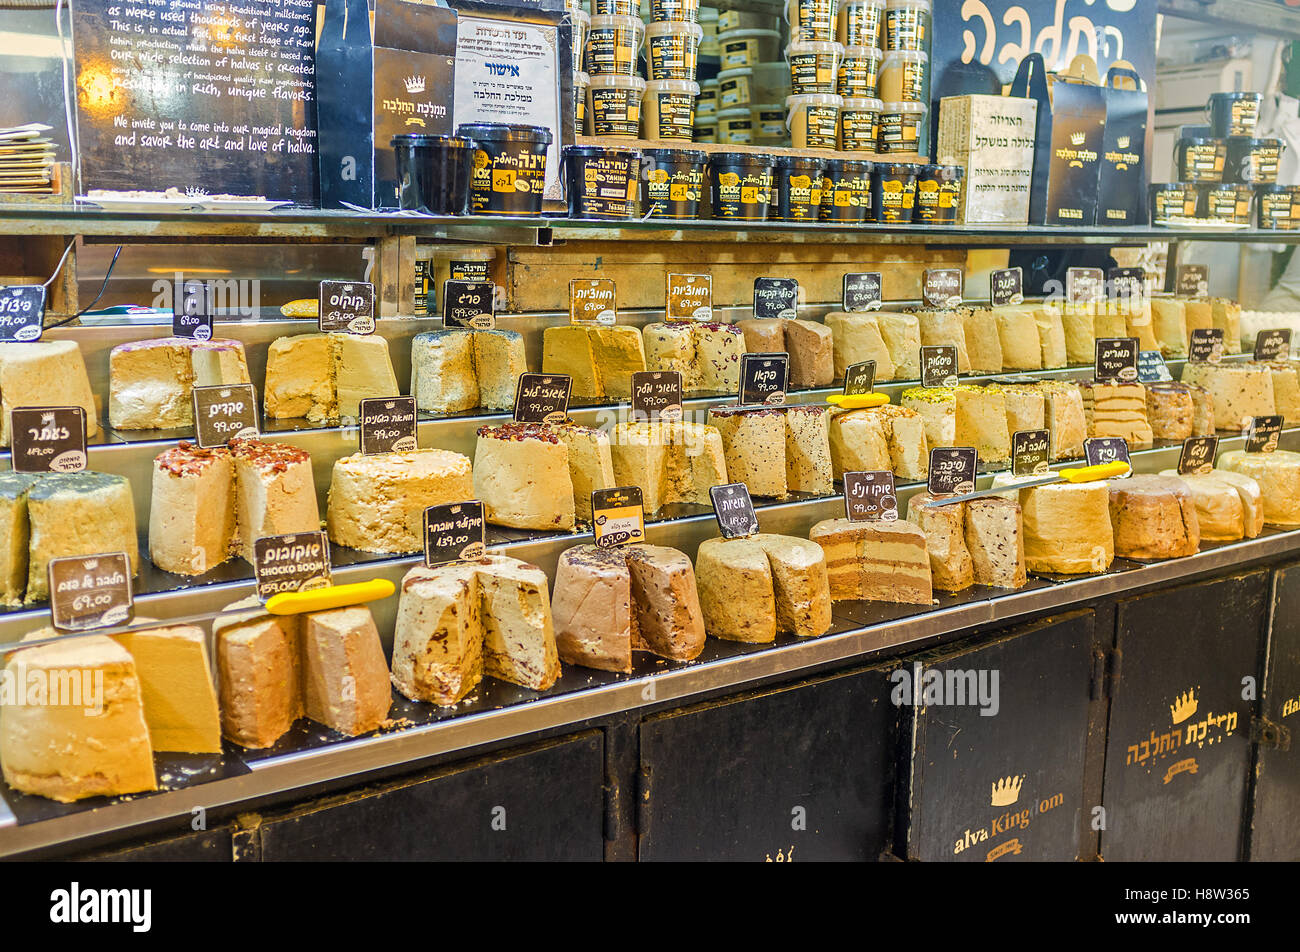 The various types of halva, the famous Eastern dessert, in Mahane Yehuda market - Stock Image